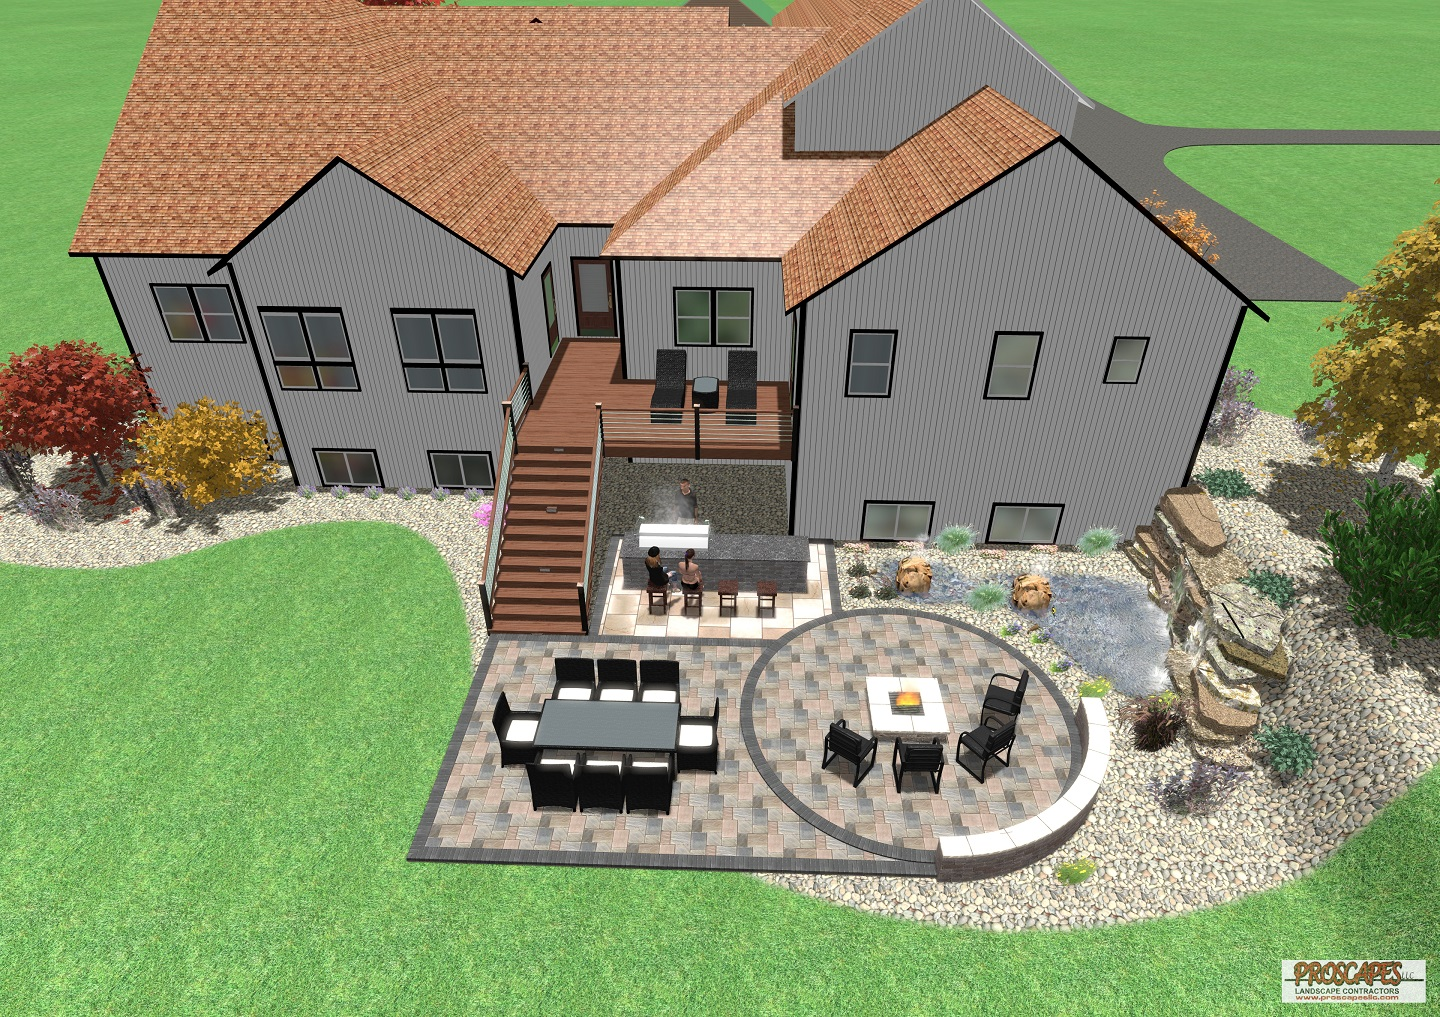 Approximate price: $80,000 - This outdoor living space offers a hearty welcome to visitors with warm earth-toned pavers, a bar-front grill station, large dining area, and a fire pit area flanked by a curved seating wall. This design creates the ultimate entertaining experience in a beautiful setting. This project's unique features include Wifi controlled dimmable lighting, a retaining wall with a waterfall, and boulder fountains set in the pond.